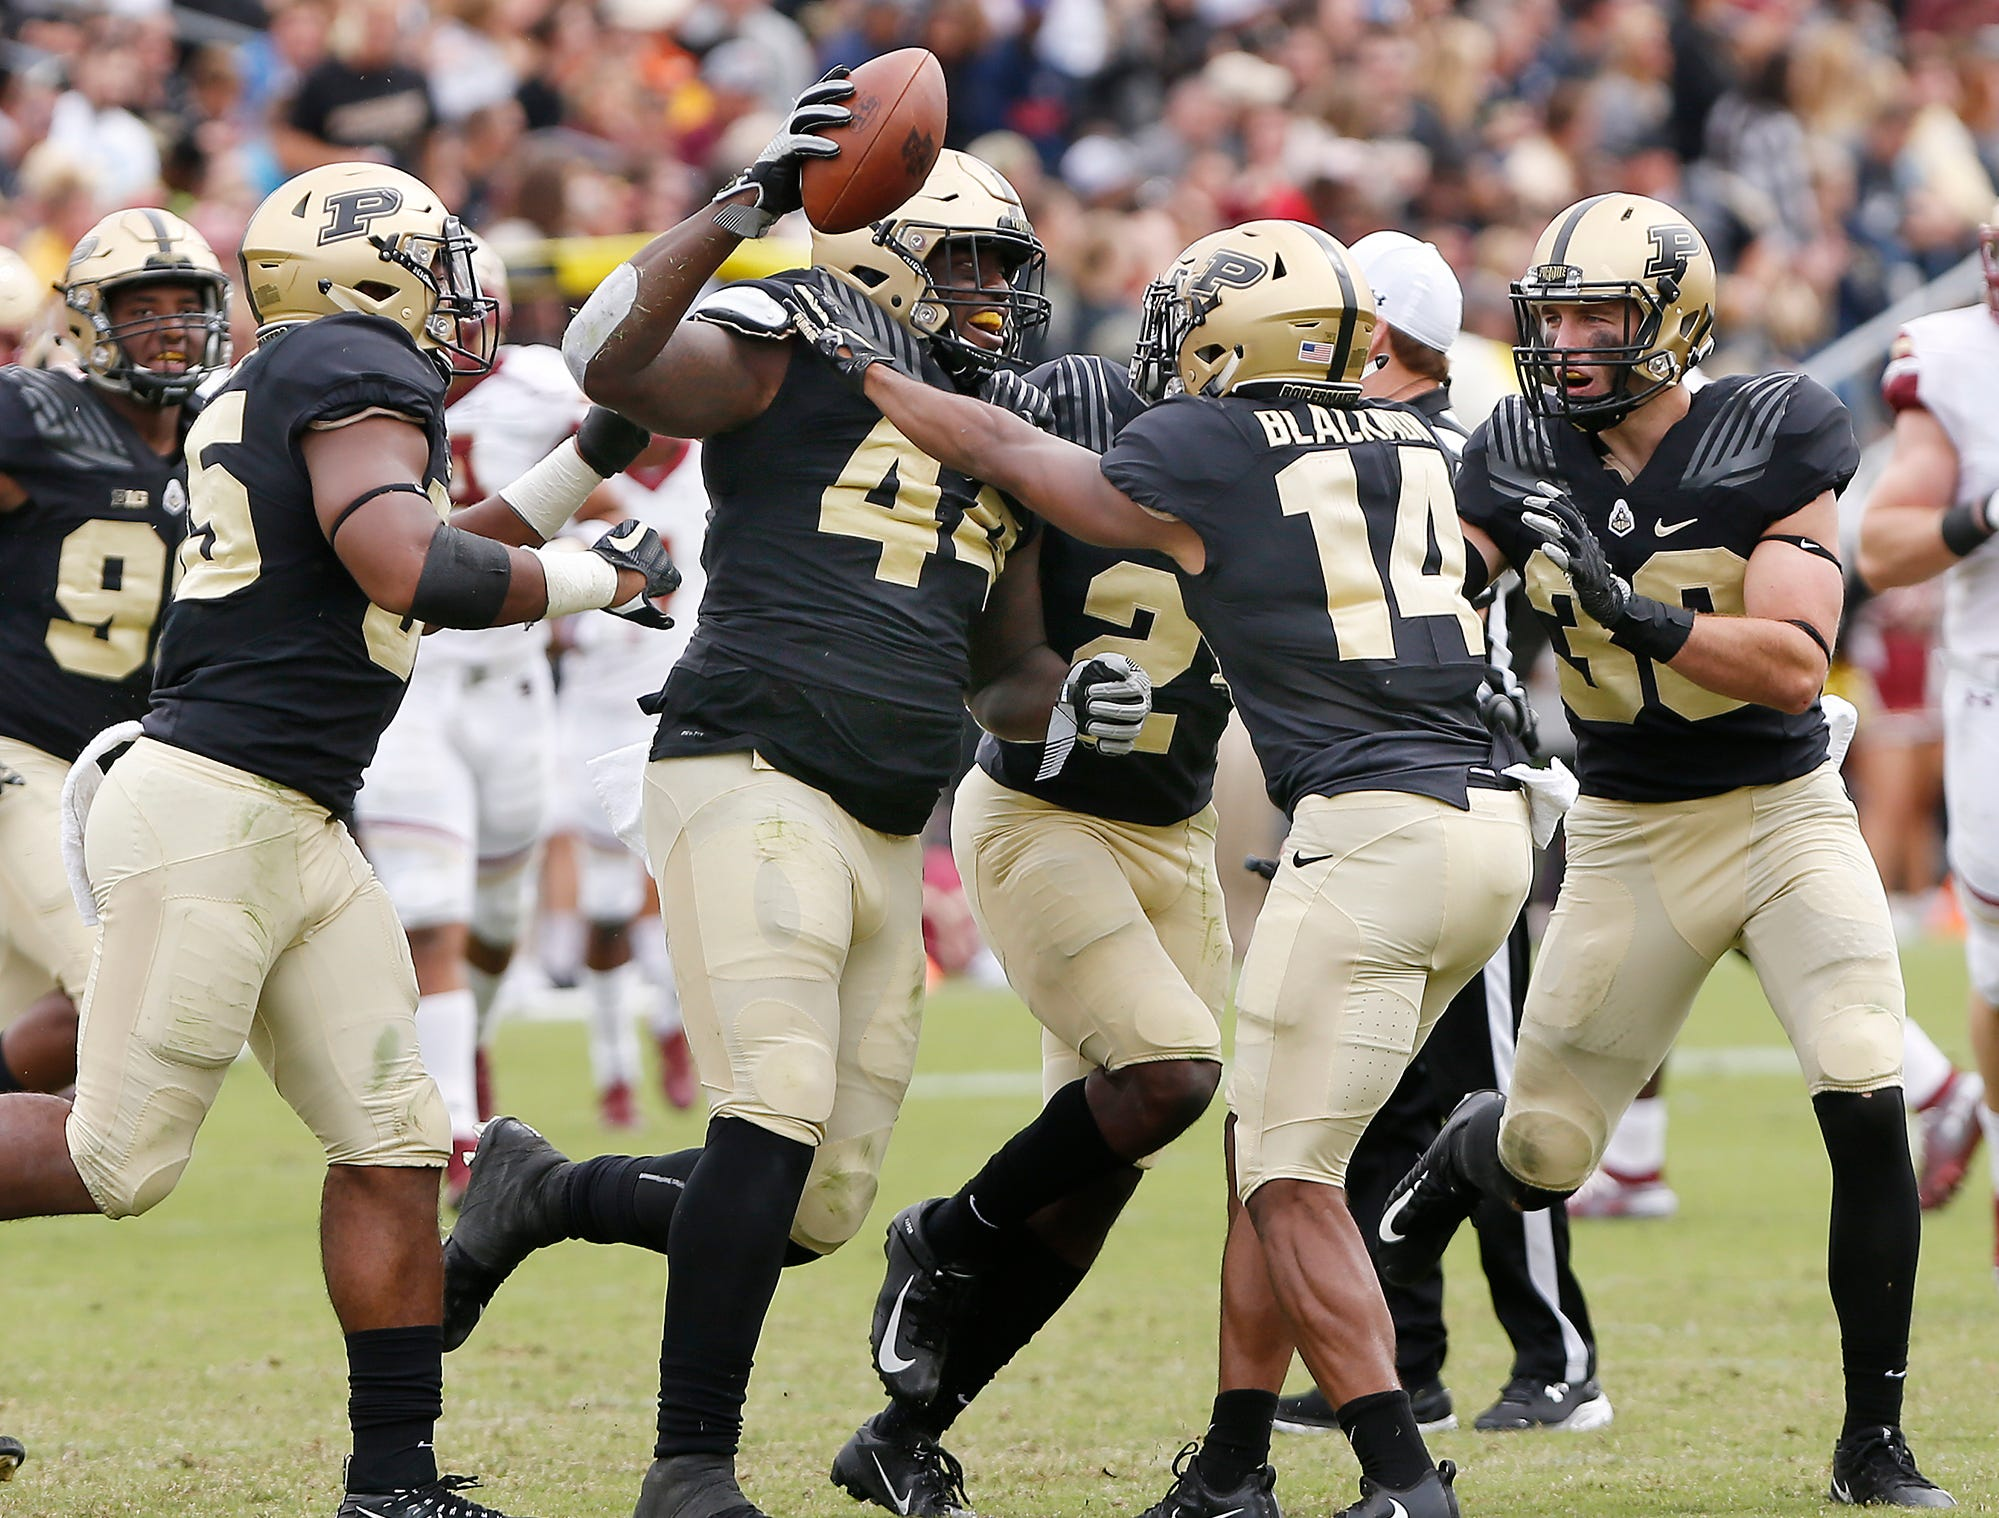 Anthony Watts of Purdue celebrates with teammates after intercepting a Boston College pass that had initially been tipped at the line of scrimmage at 5:42 in the third quarter Saturday, September 22, 2018, in Ross-Ade Stadium. Purdue defeated Boston College 30-13.